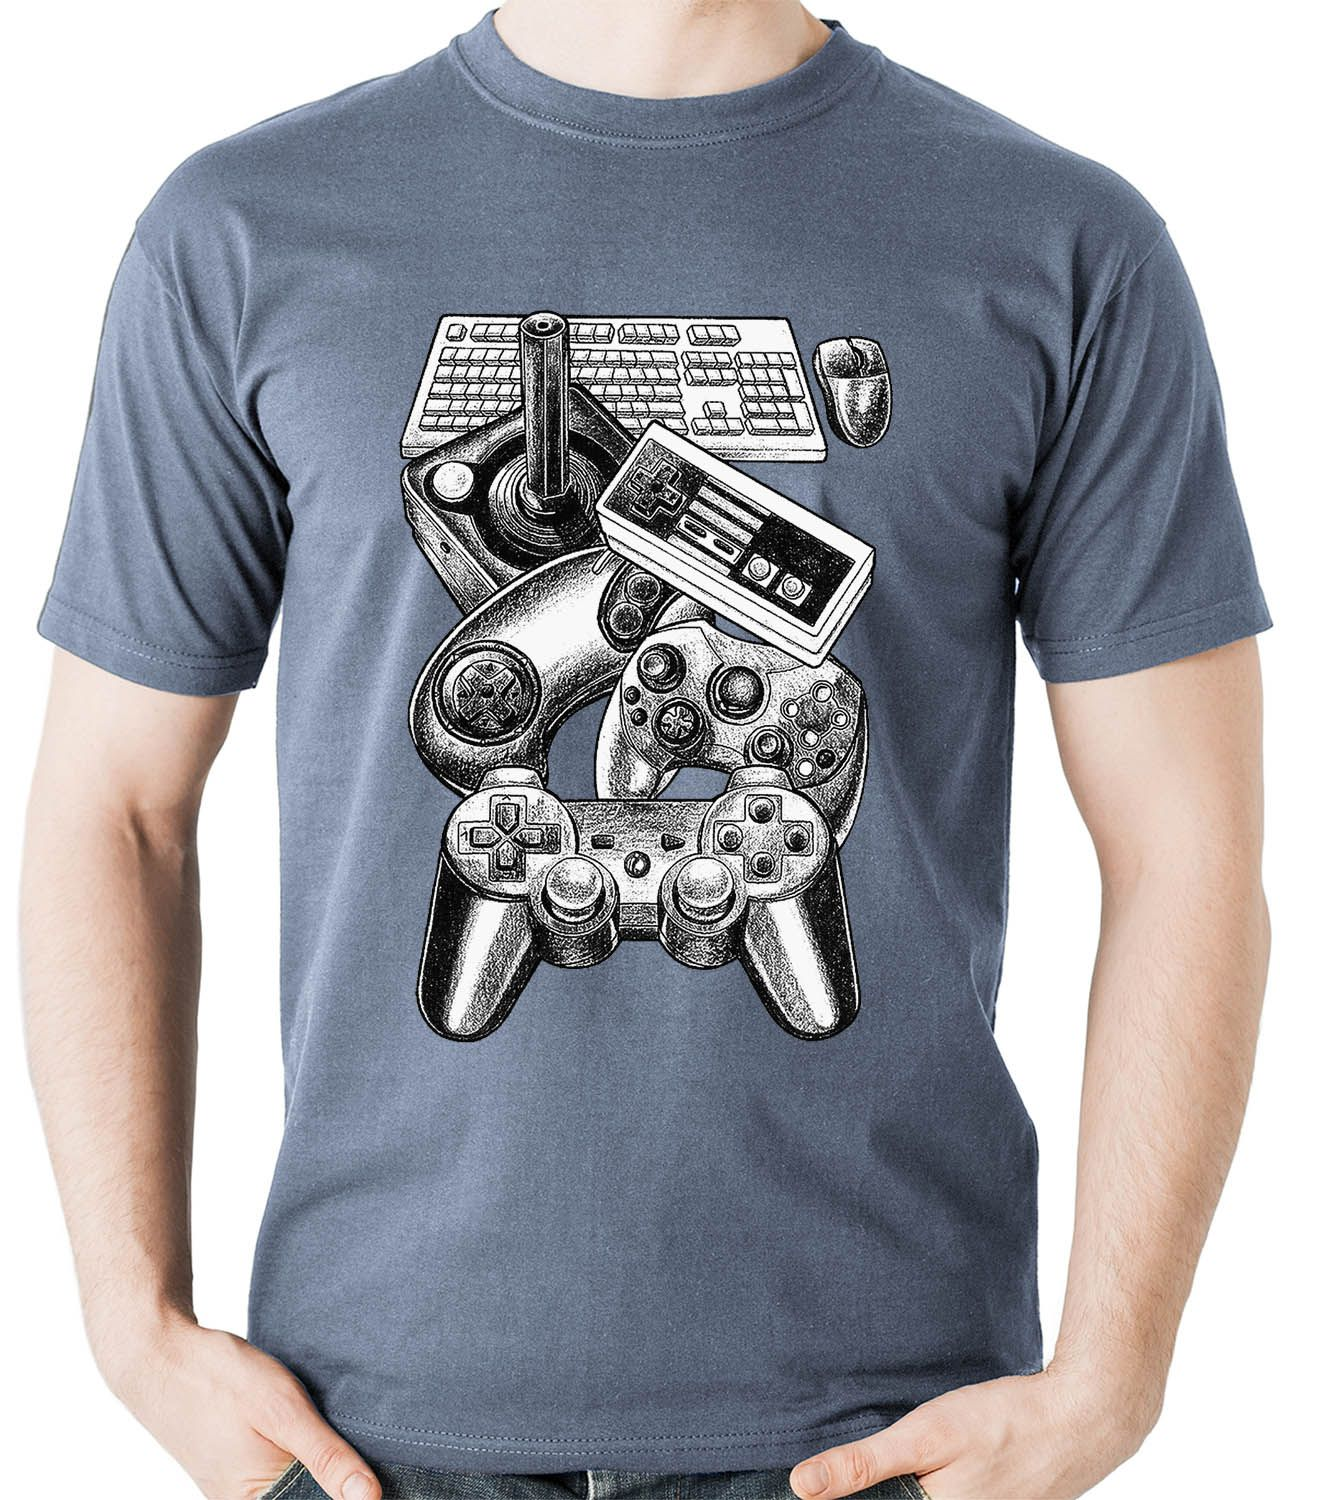 Camiseta Controles Video Game Gamer controle Camisa Blusa